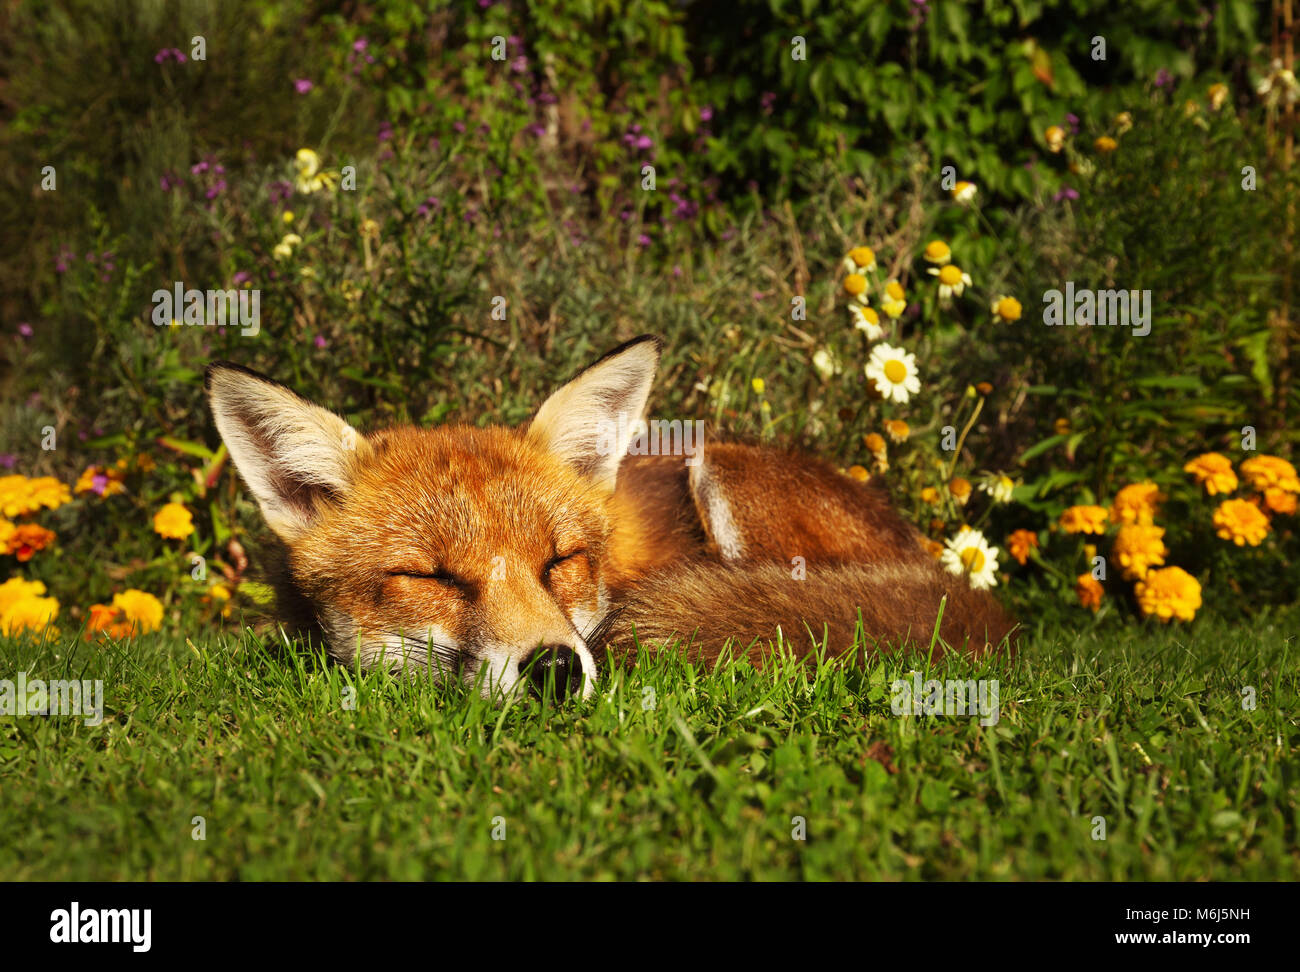 Red fox sleeping in the garden with flowers, summer in UK. Stock Photo